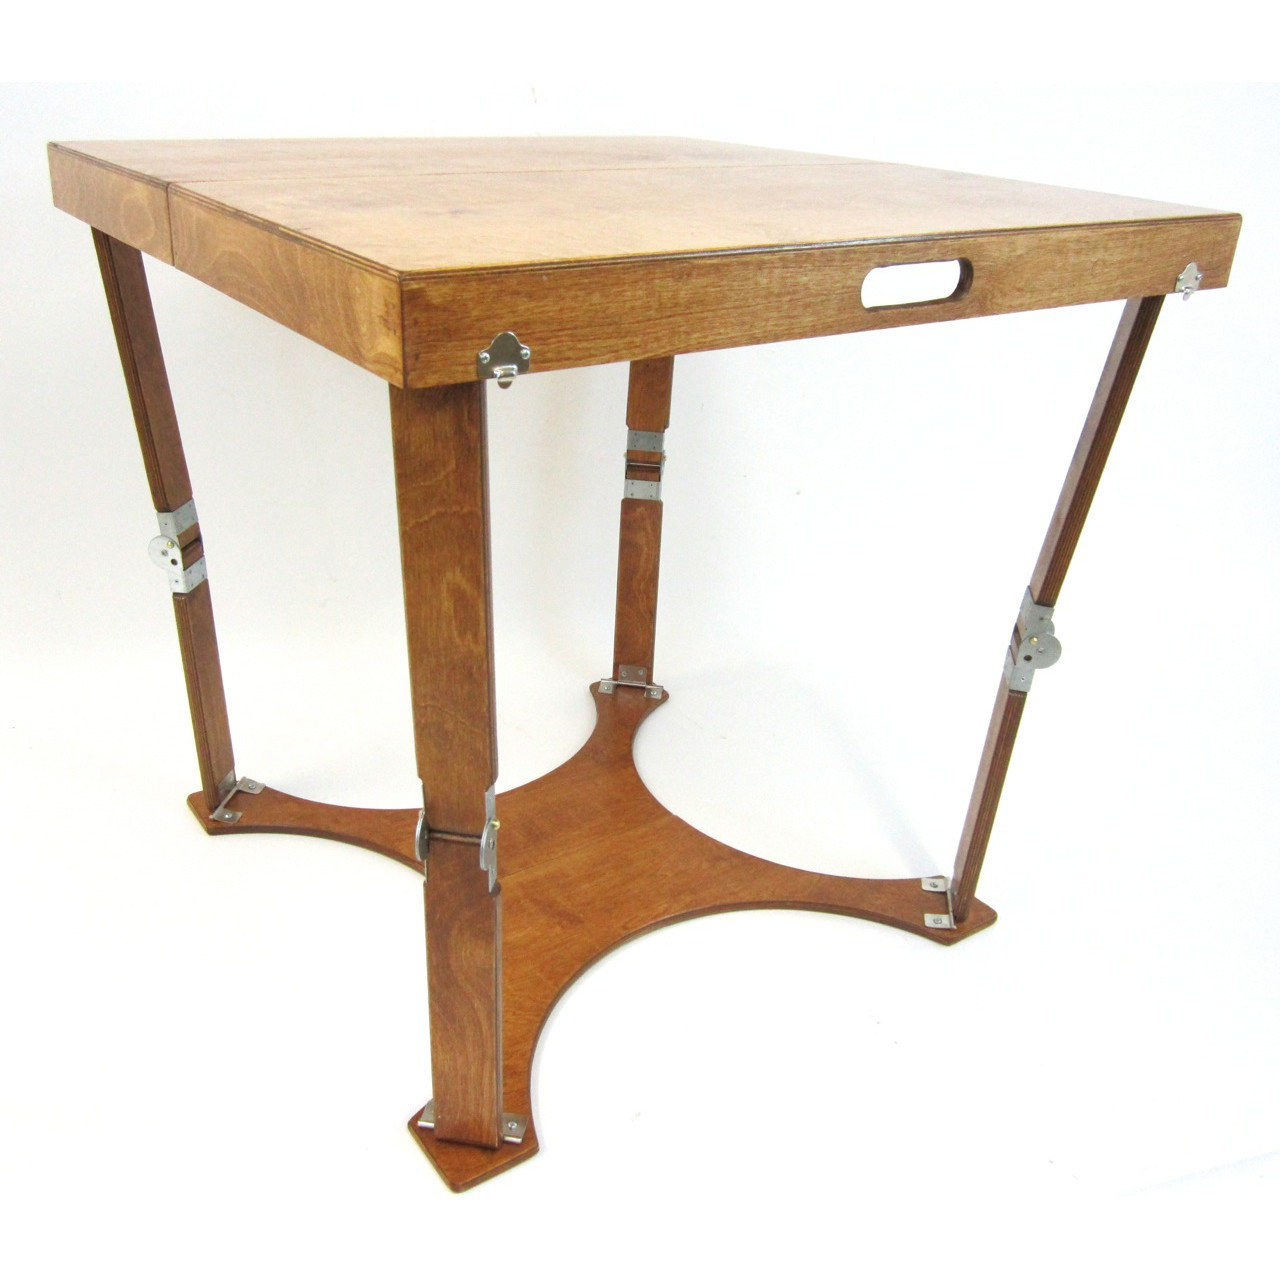 Best ideas about Folding Dining Table . Save or Pin Portable Folding Dining Table Now.